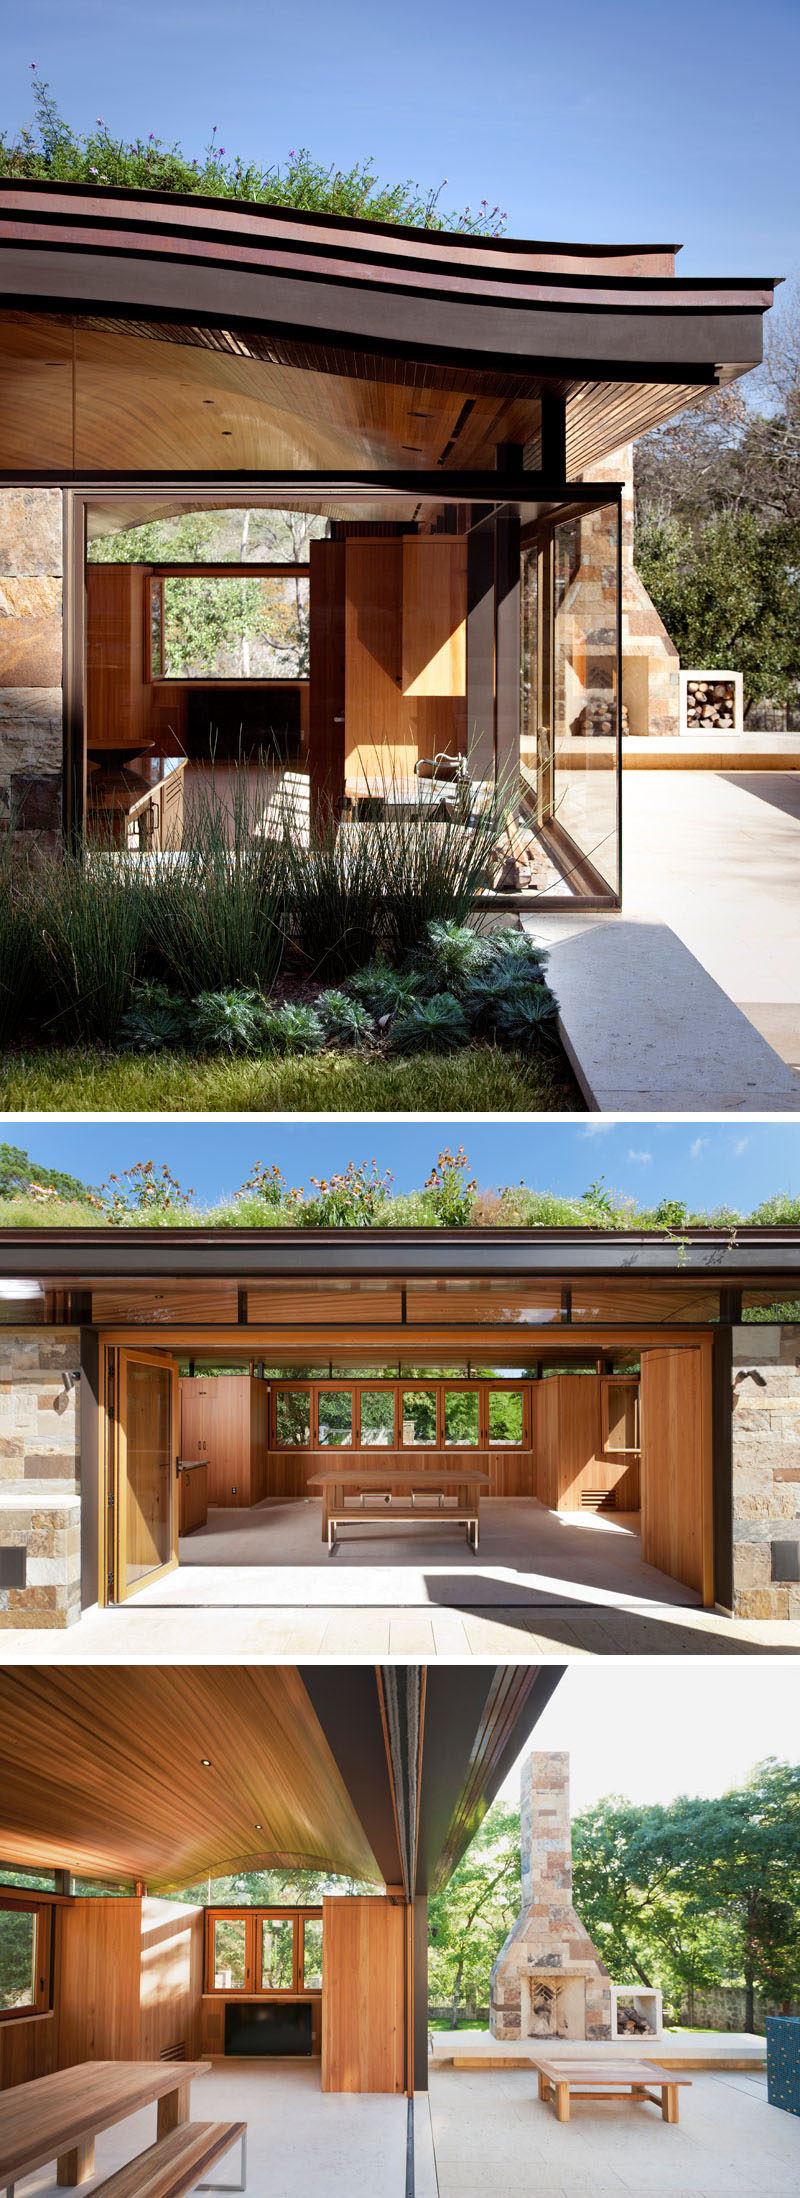 This modern pool house with a curved green roof is home to an indoor-outdoor dining area complete with a high-end residential kitchen, while outside, there's a fireplace for cool nights. #PoolHouse #Fireplace #IndoorOutdoorDining